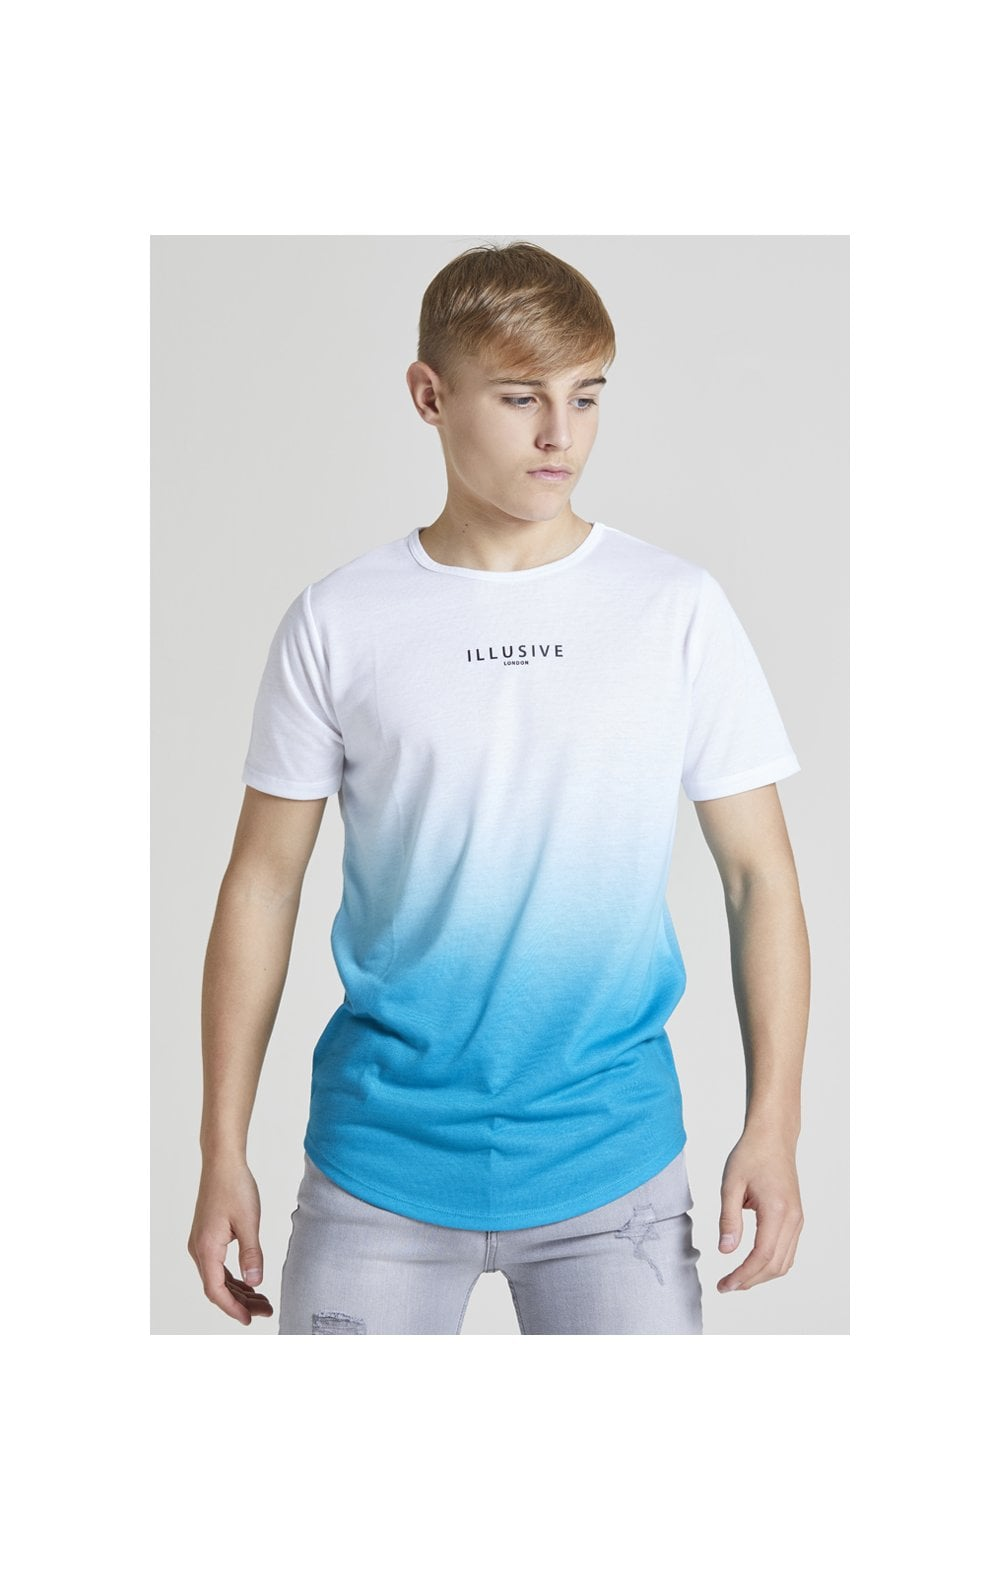 Illusive London Core Fade Tee – White & Teal Green (3)